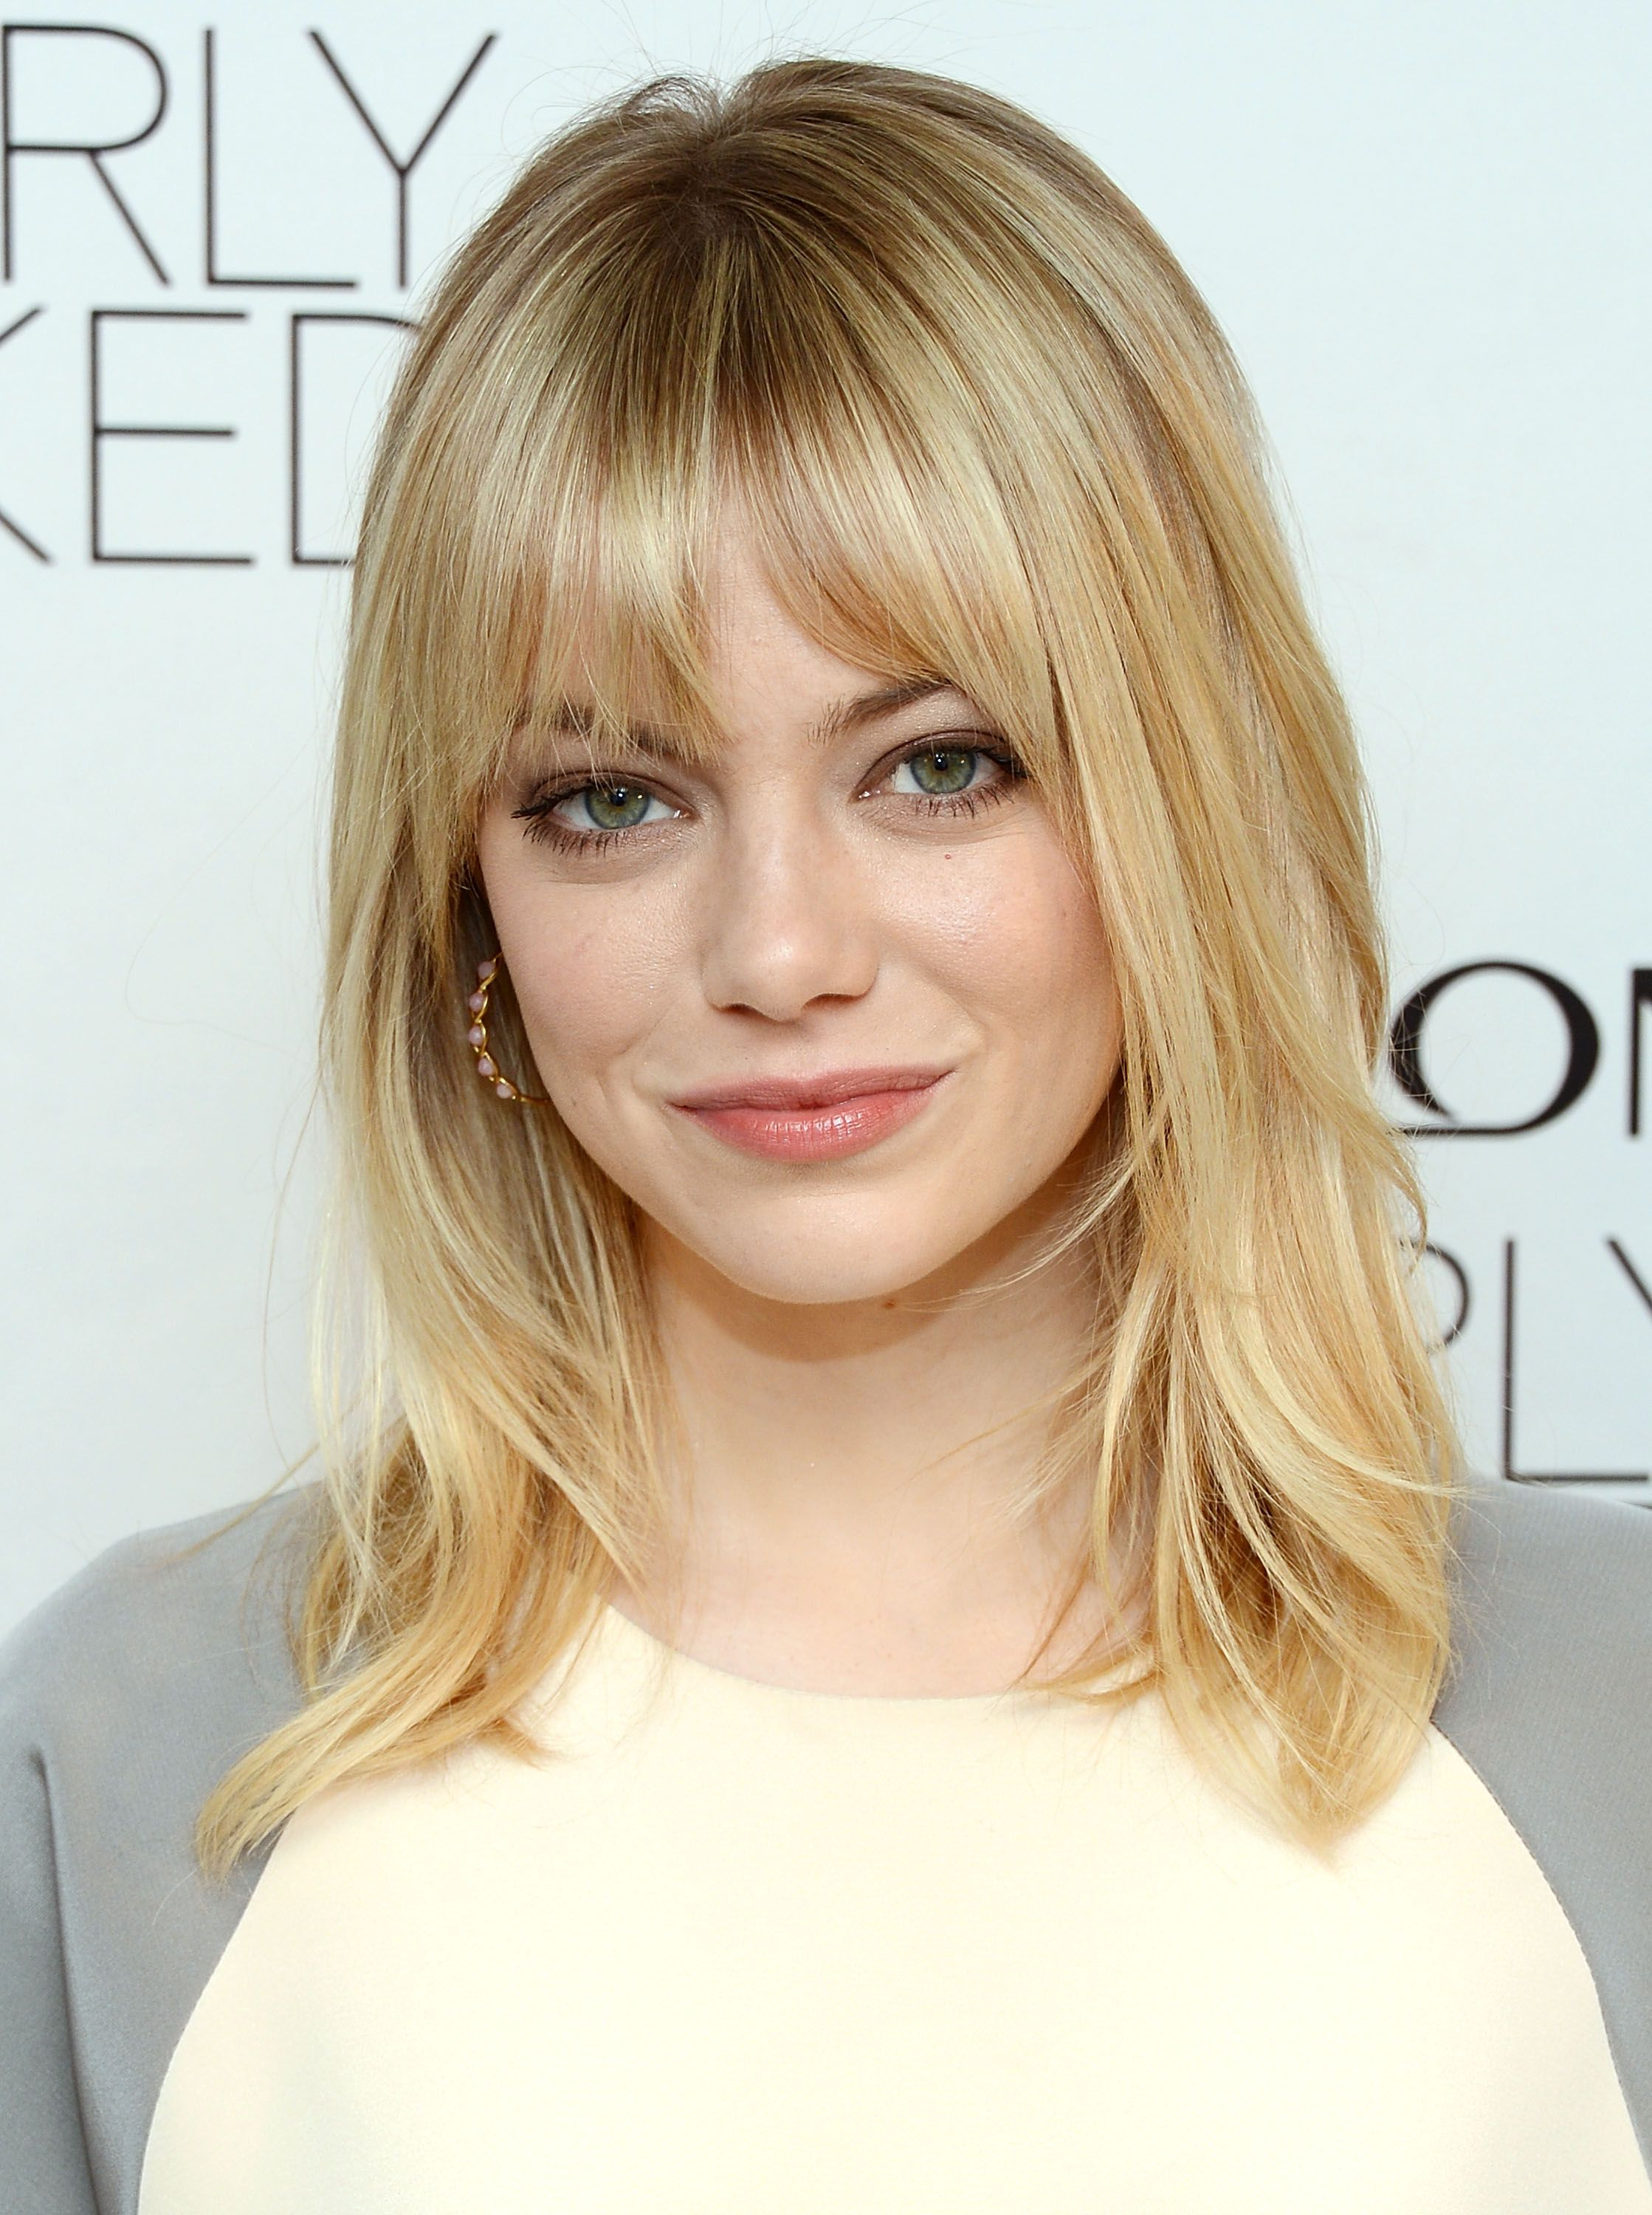 Blonde hair with bangs #5